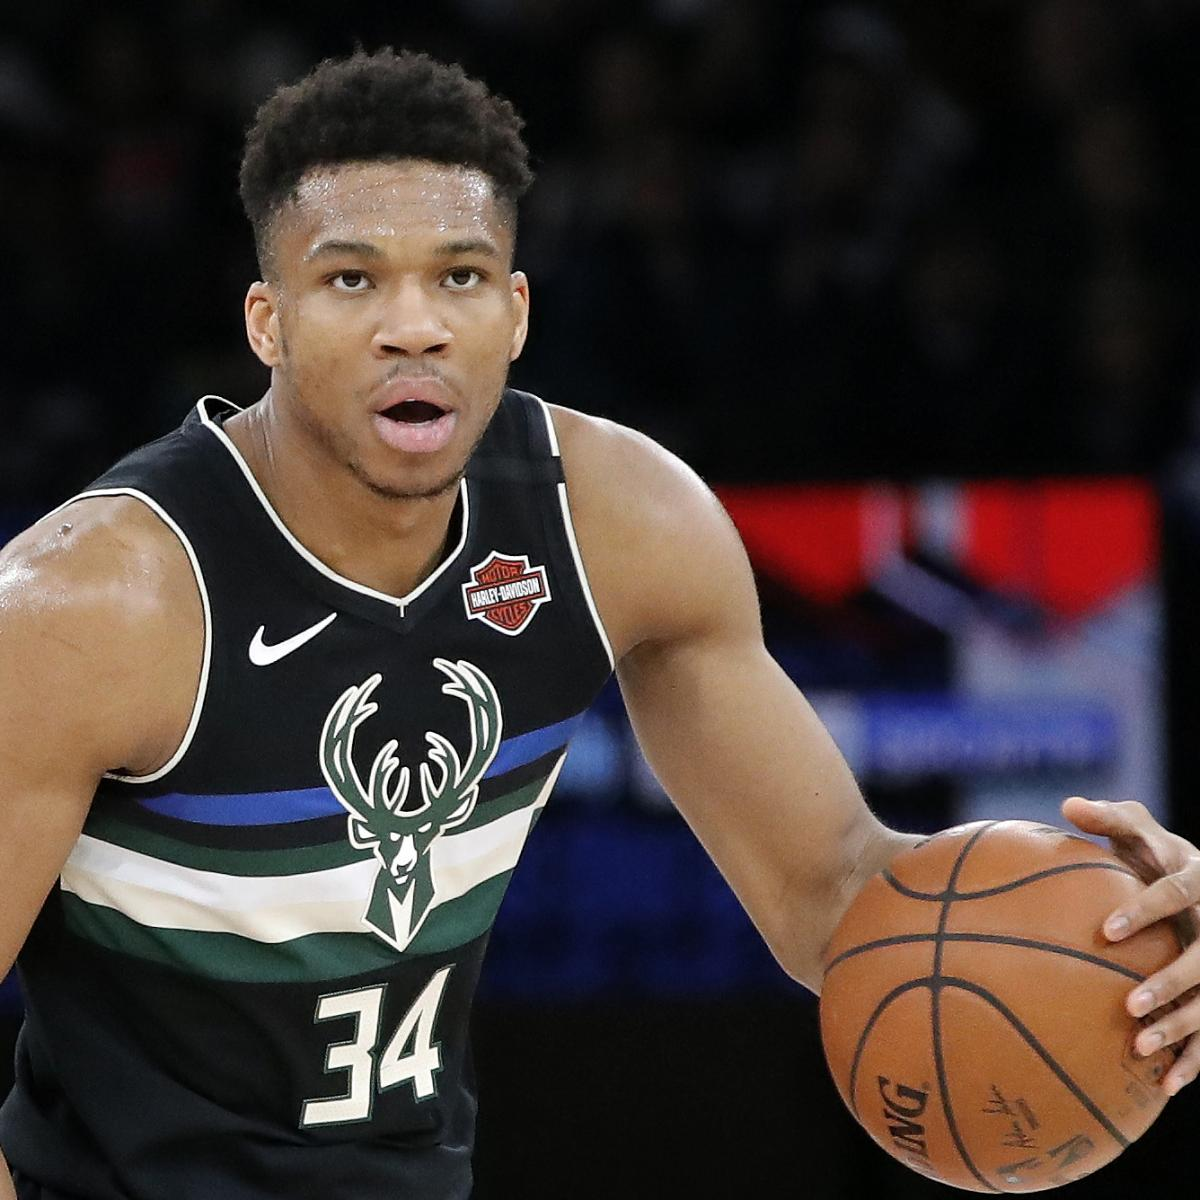 NBA Rumors: Giannis Antetokounmpo Expected to Sign New Bucks Contract in 2020